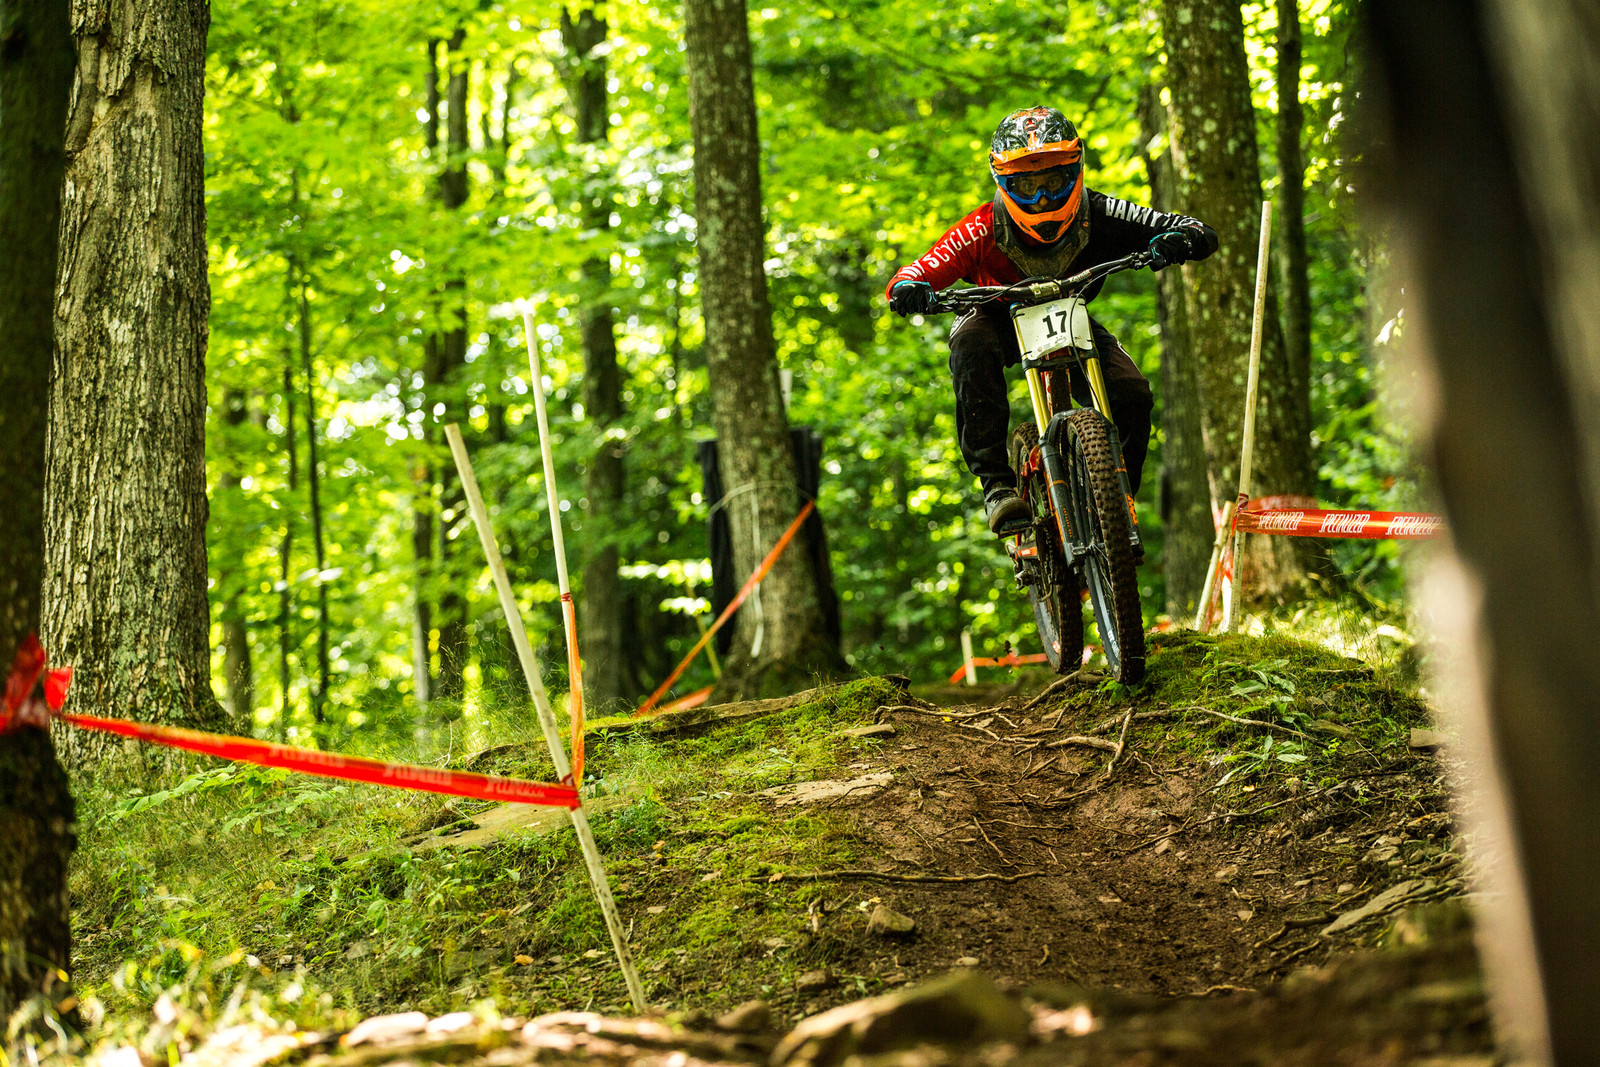 David Kahn - RACE DAY GALLERY - 2017 Pro GRT, Windham, NY - Mountain Biking Pictures - Vital MTB